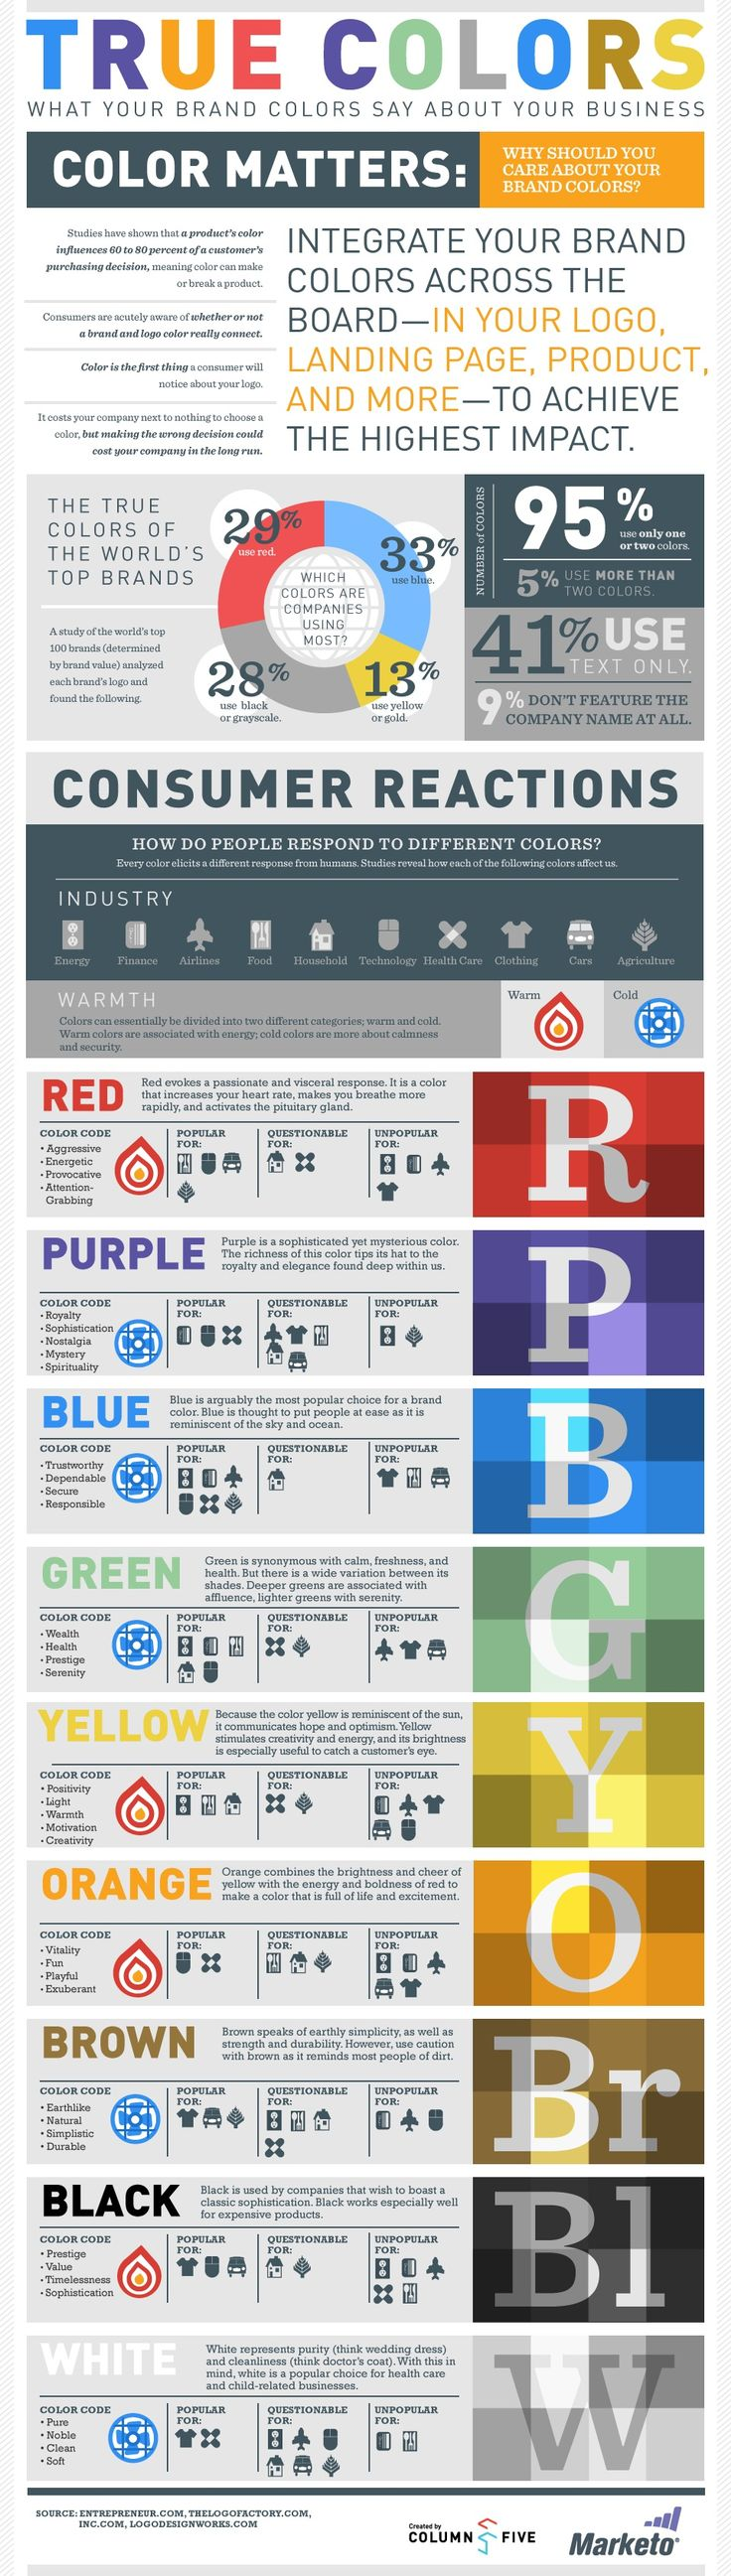 True Colours - What your brand colours say about your business